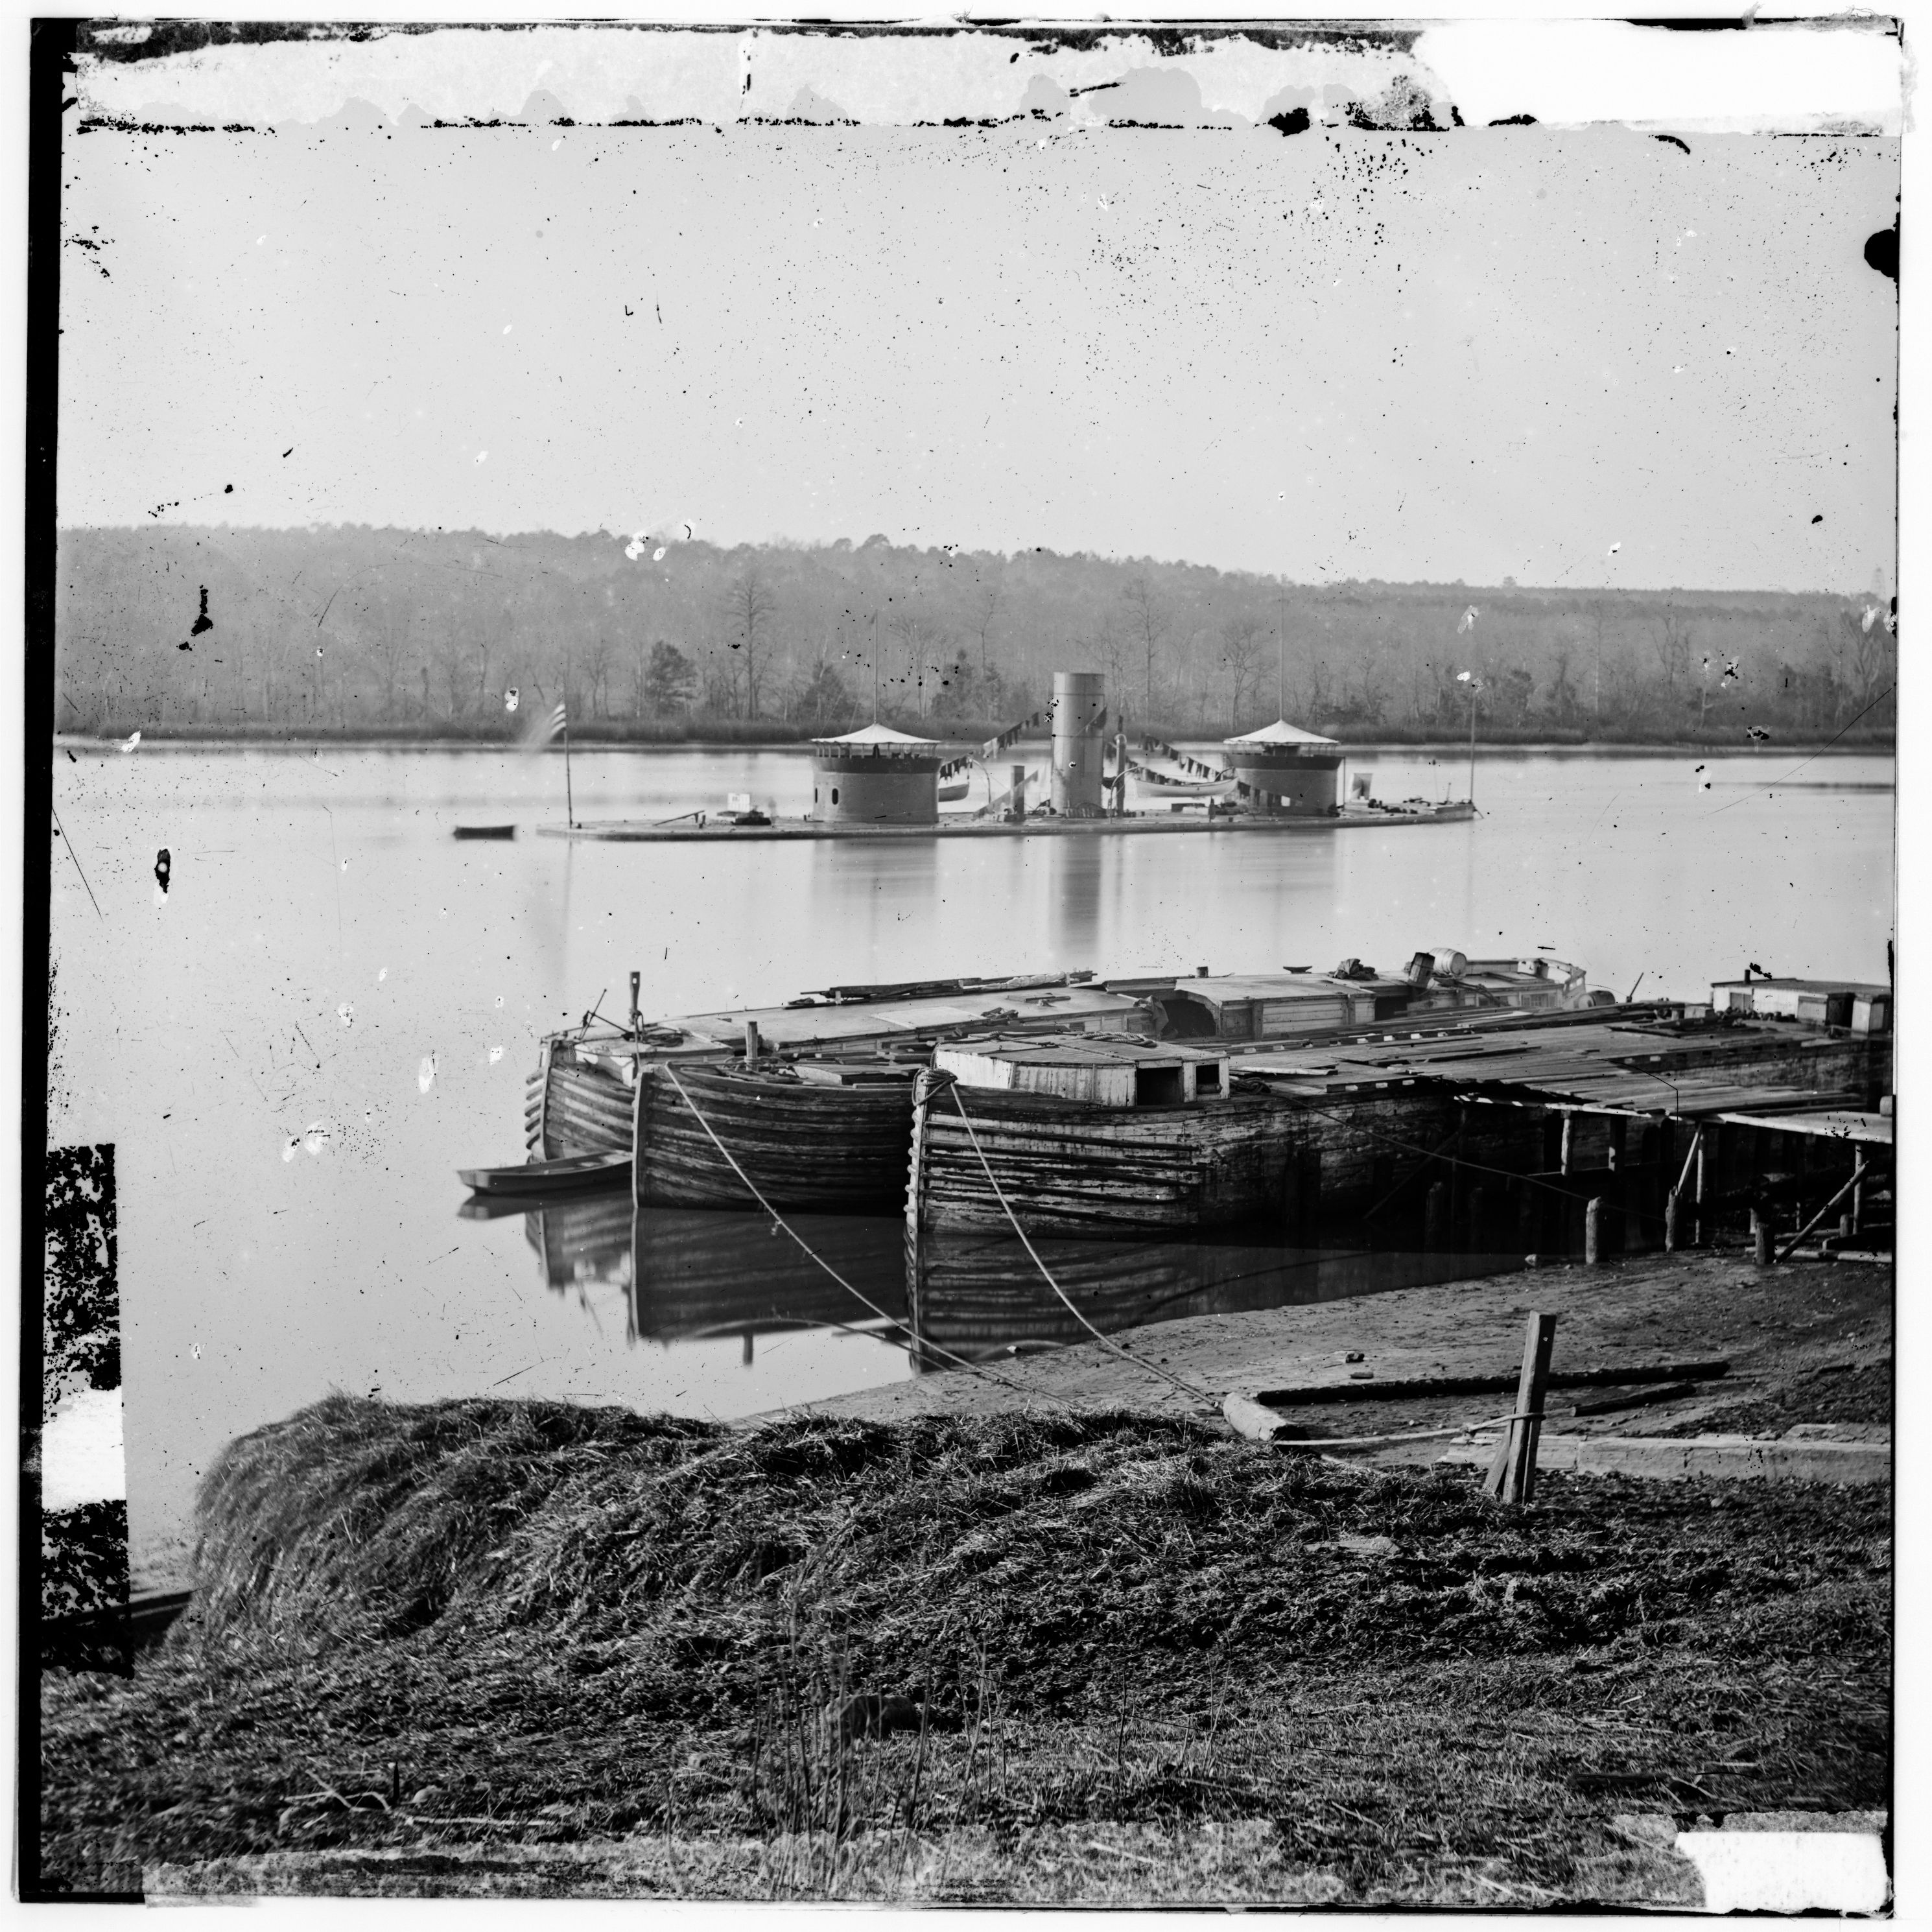 The U.S.S. Onondaga, a Monitor built in 1864 with two turrets.